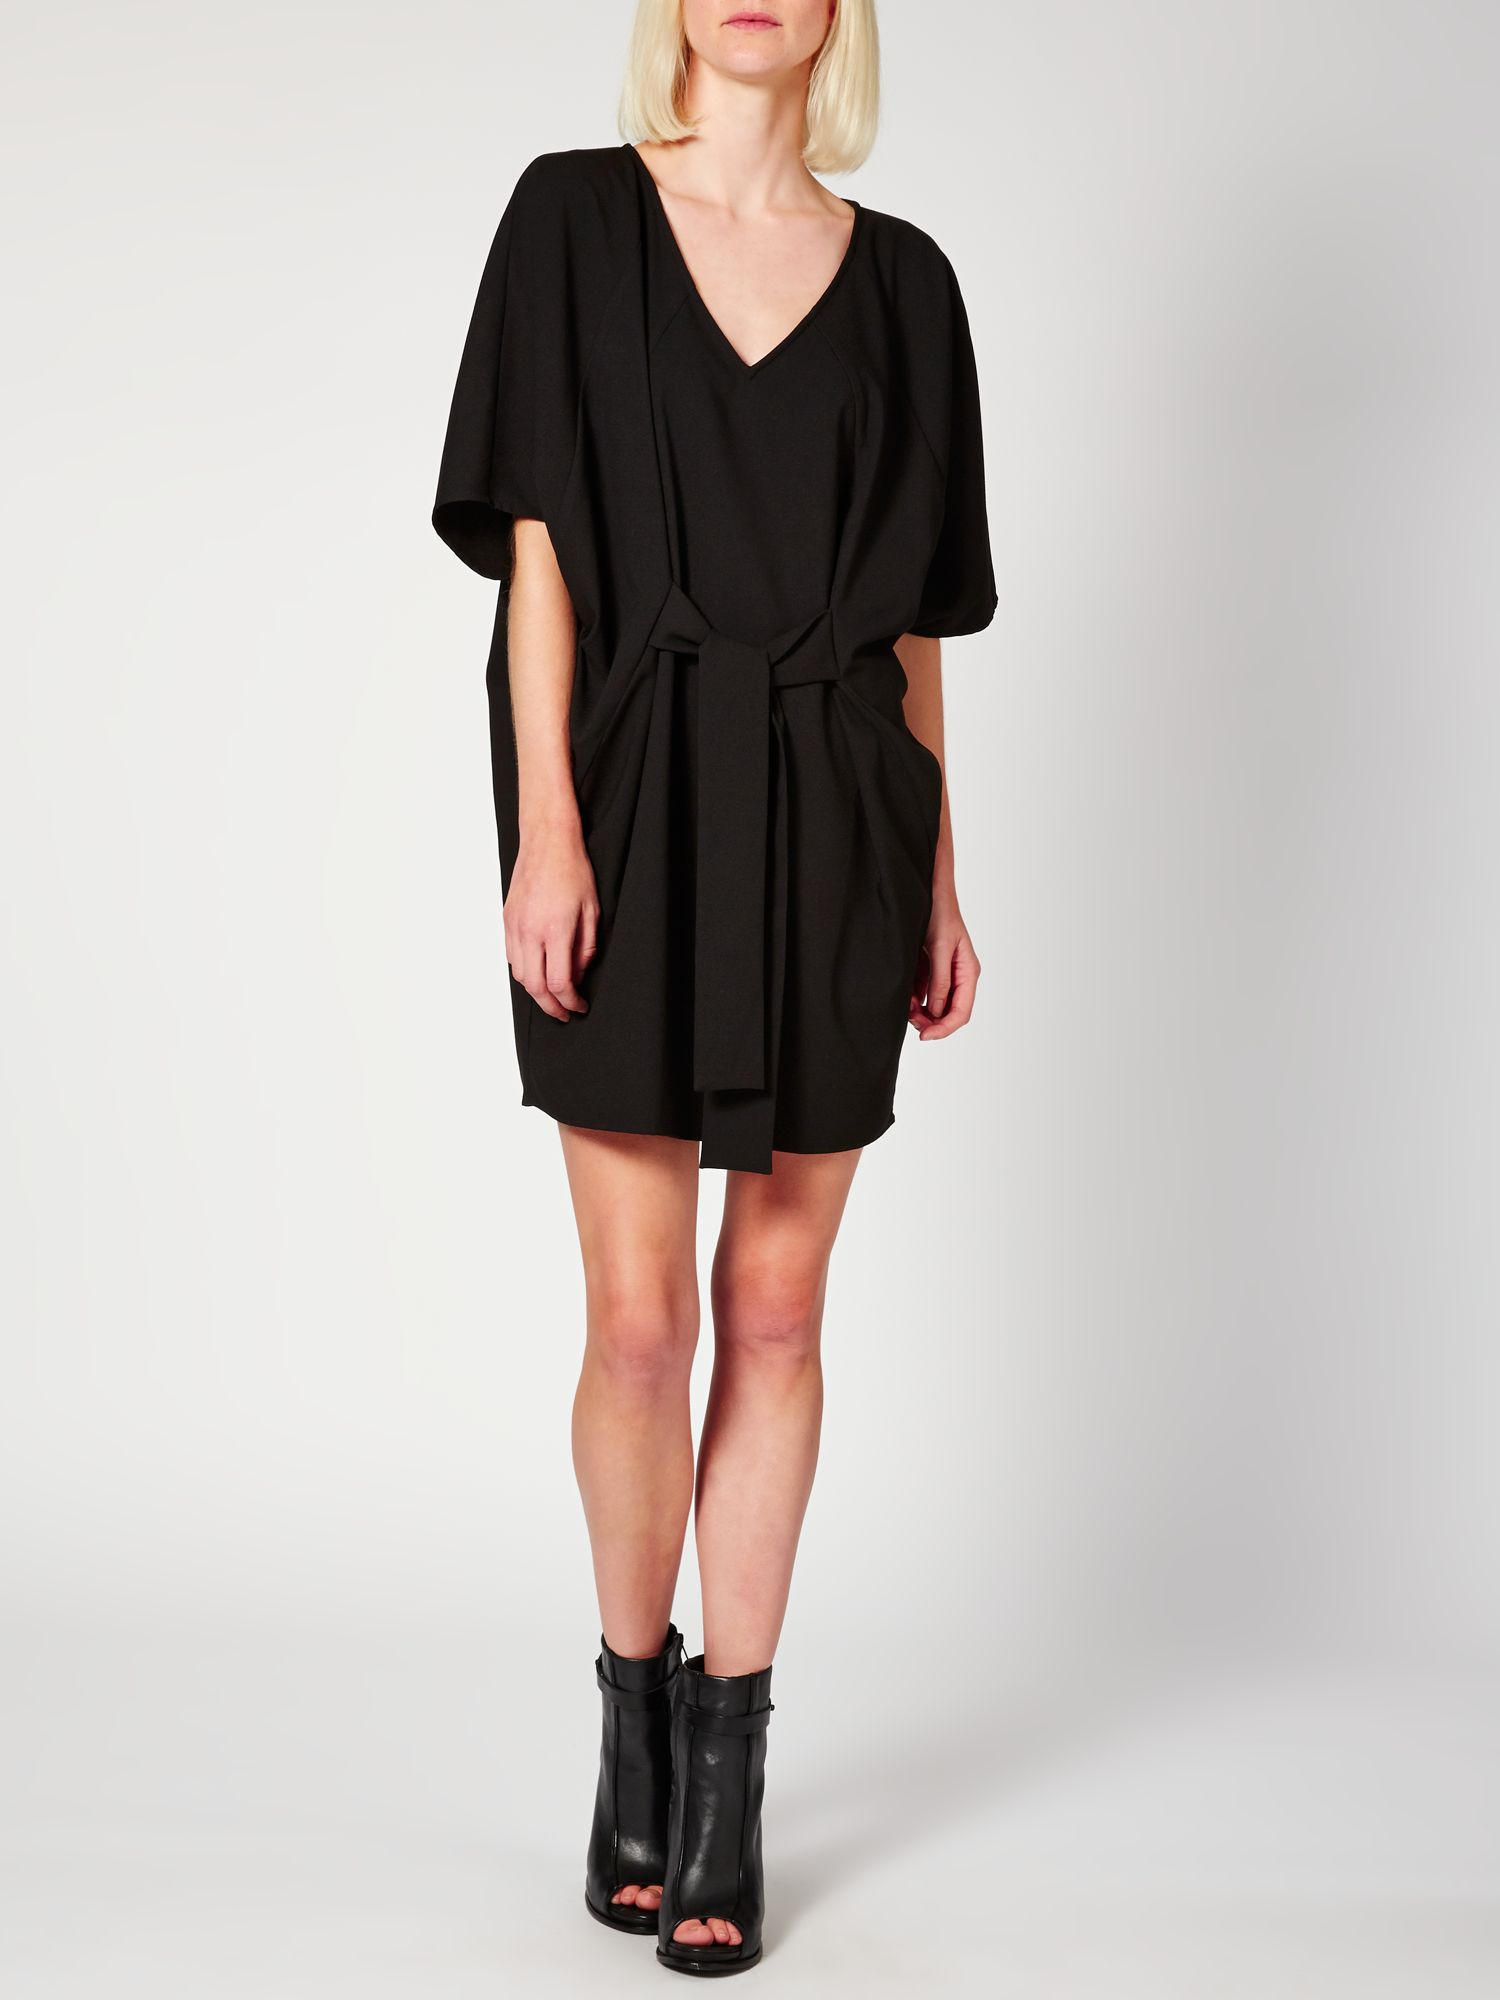 V neck batwing dress